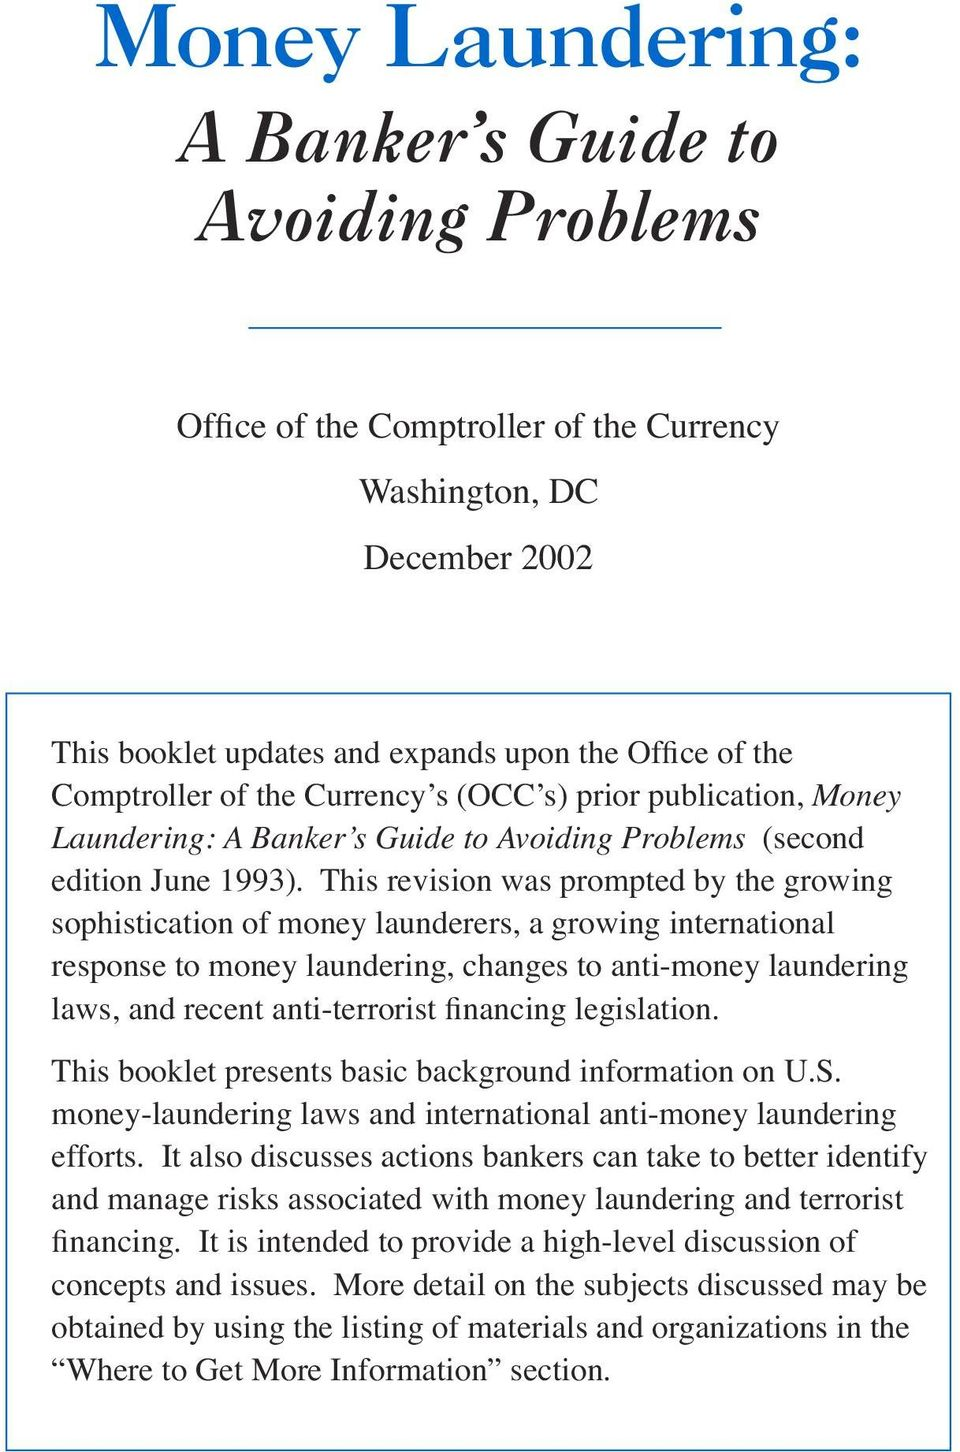 This revision was prompted by the growing sophistication of money launderers, a growing international response to money laundering, changes to anti-money laundering laws, and recent anti-terrorist